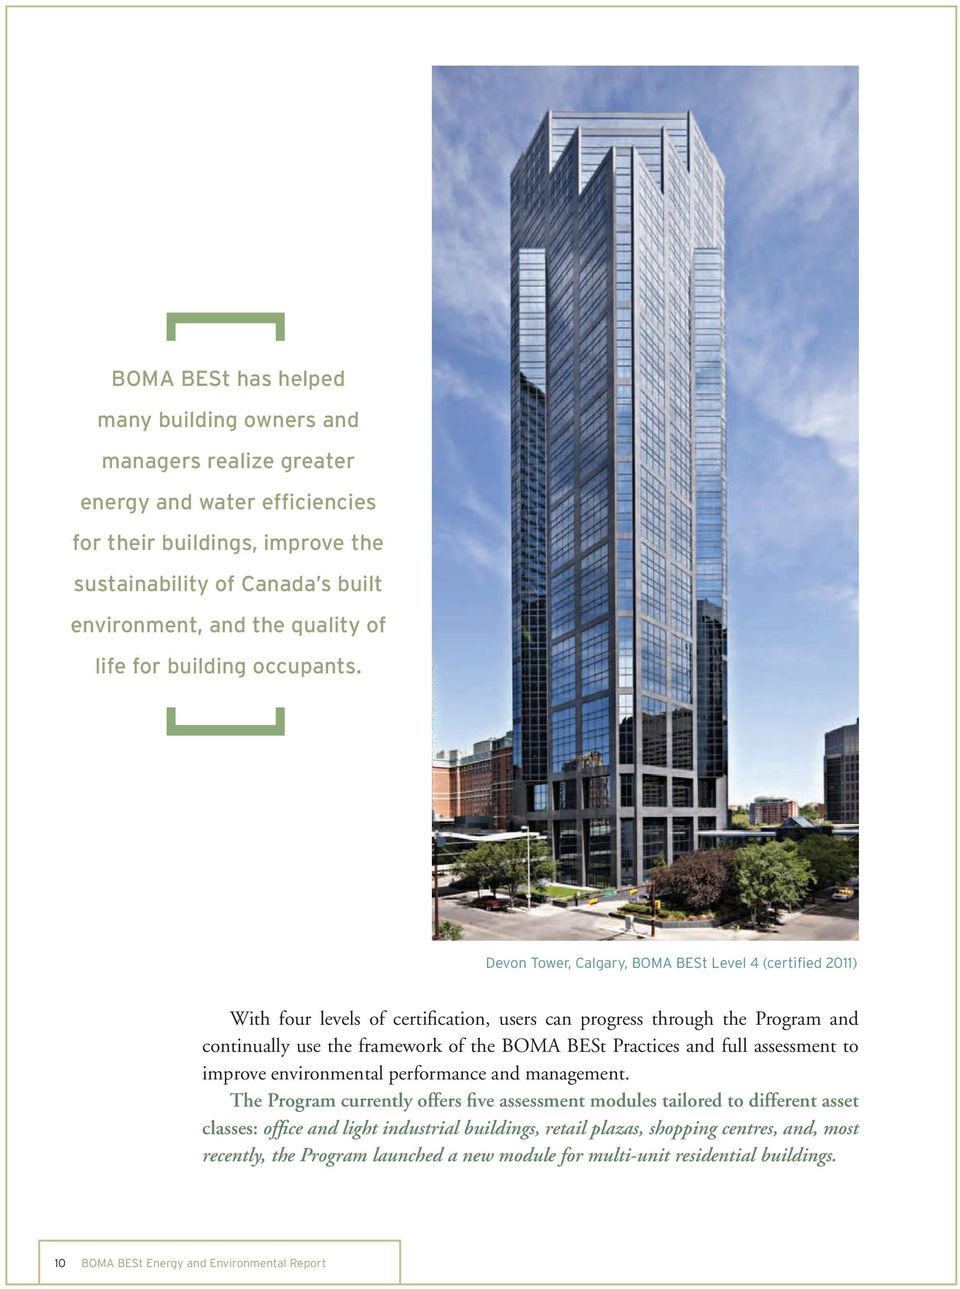 Devon Tower, Calgary, BOMA BESt Level 4 (certified 2011) With four levels of certification, users can progress through the Program and continually use the framework of the BOMA BESt Practices and